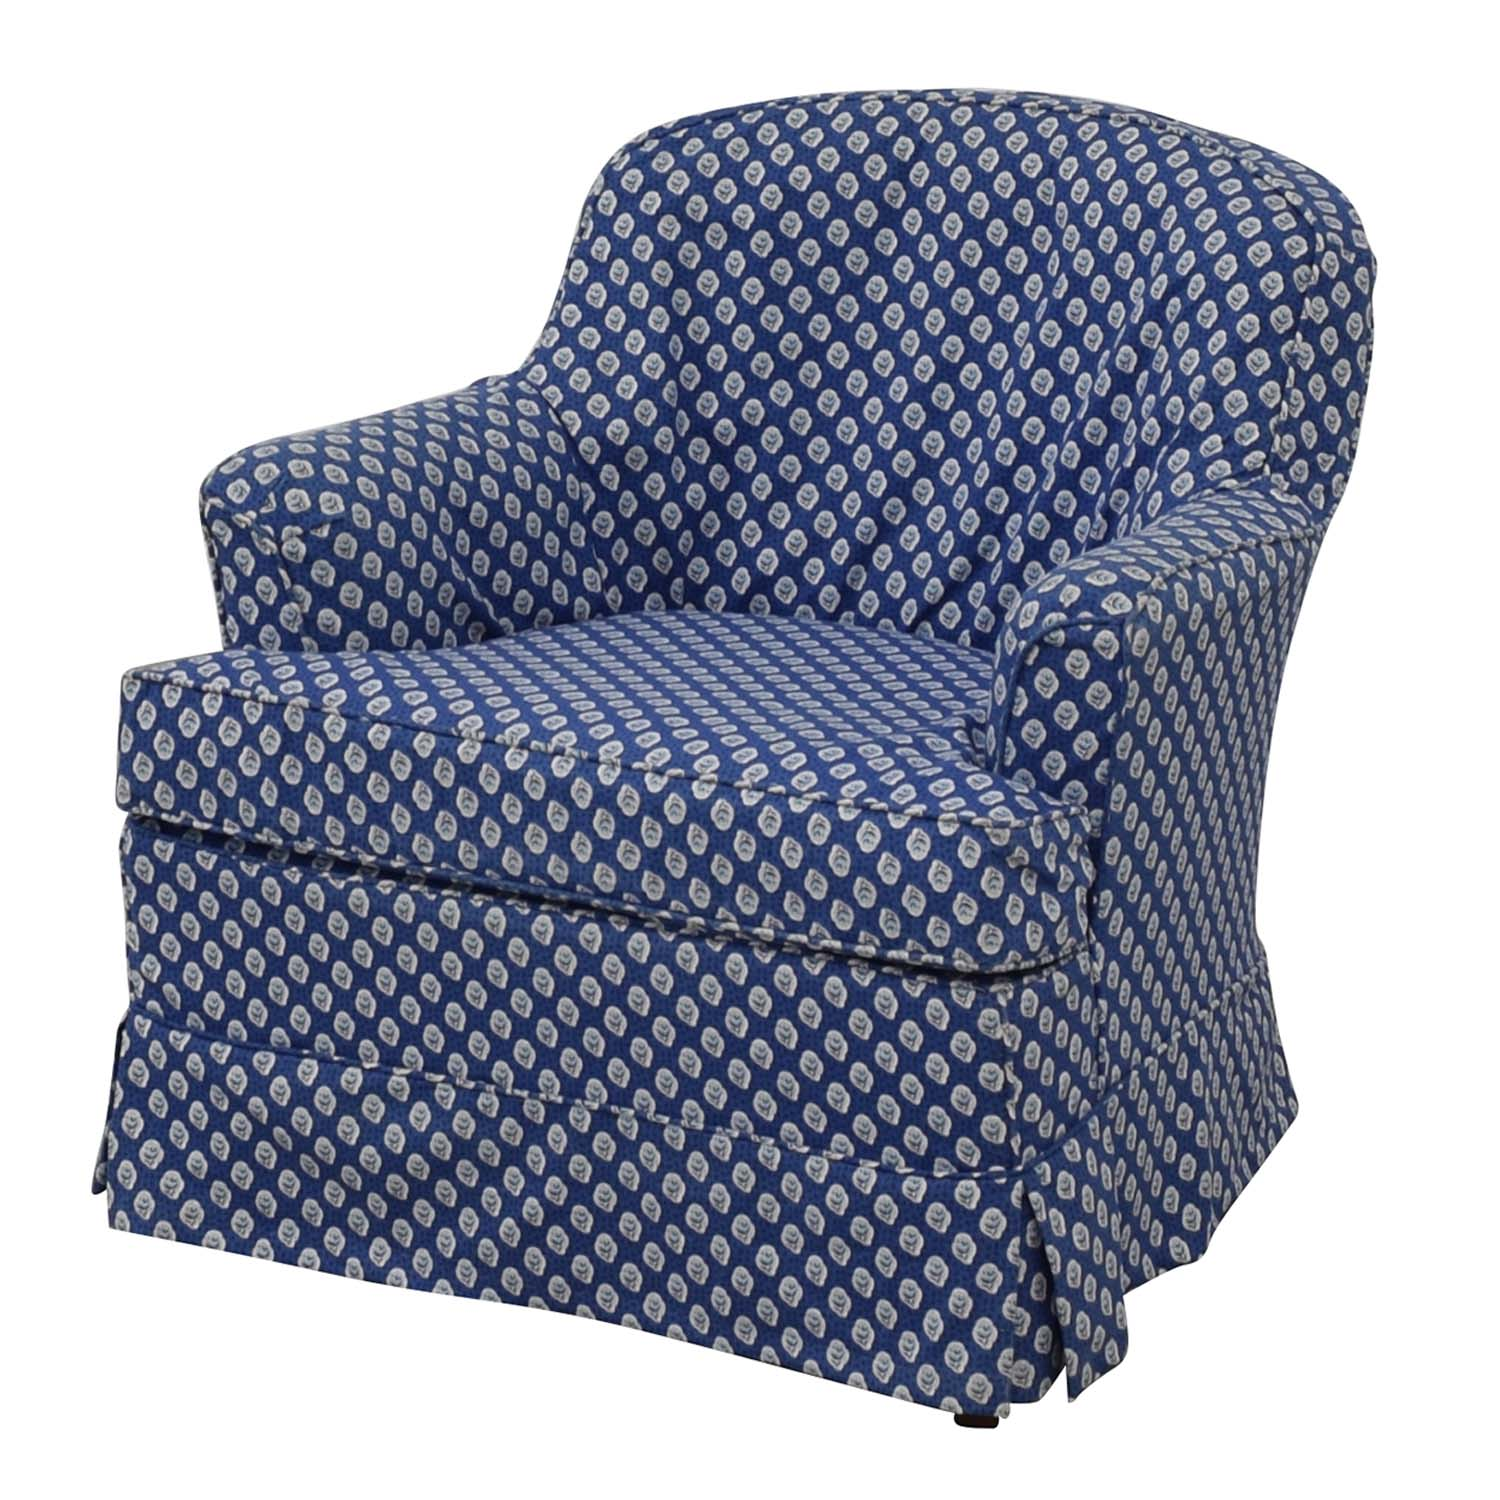 buy Drexel Heritage Art Shoppe Living Room Chair Drexel Heritage